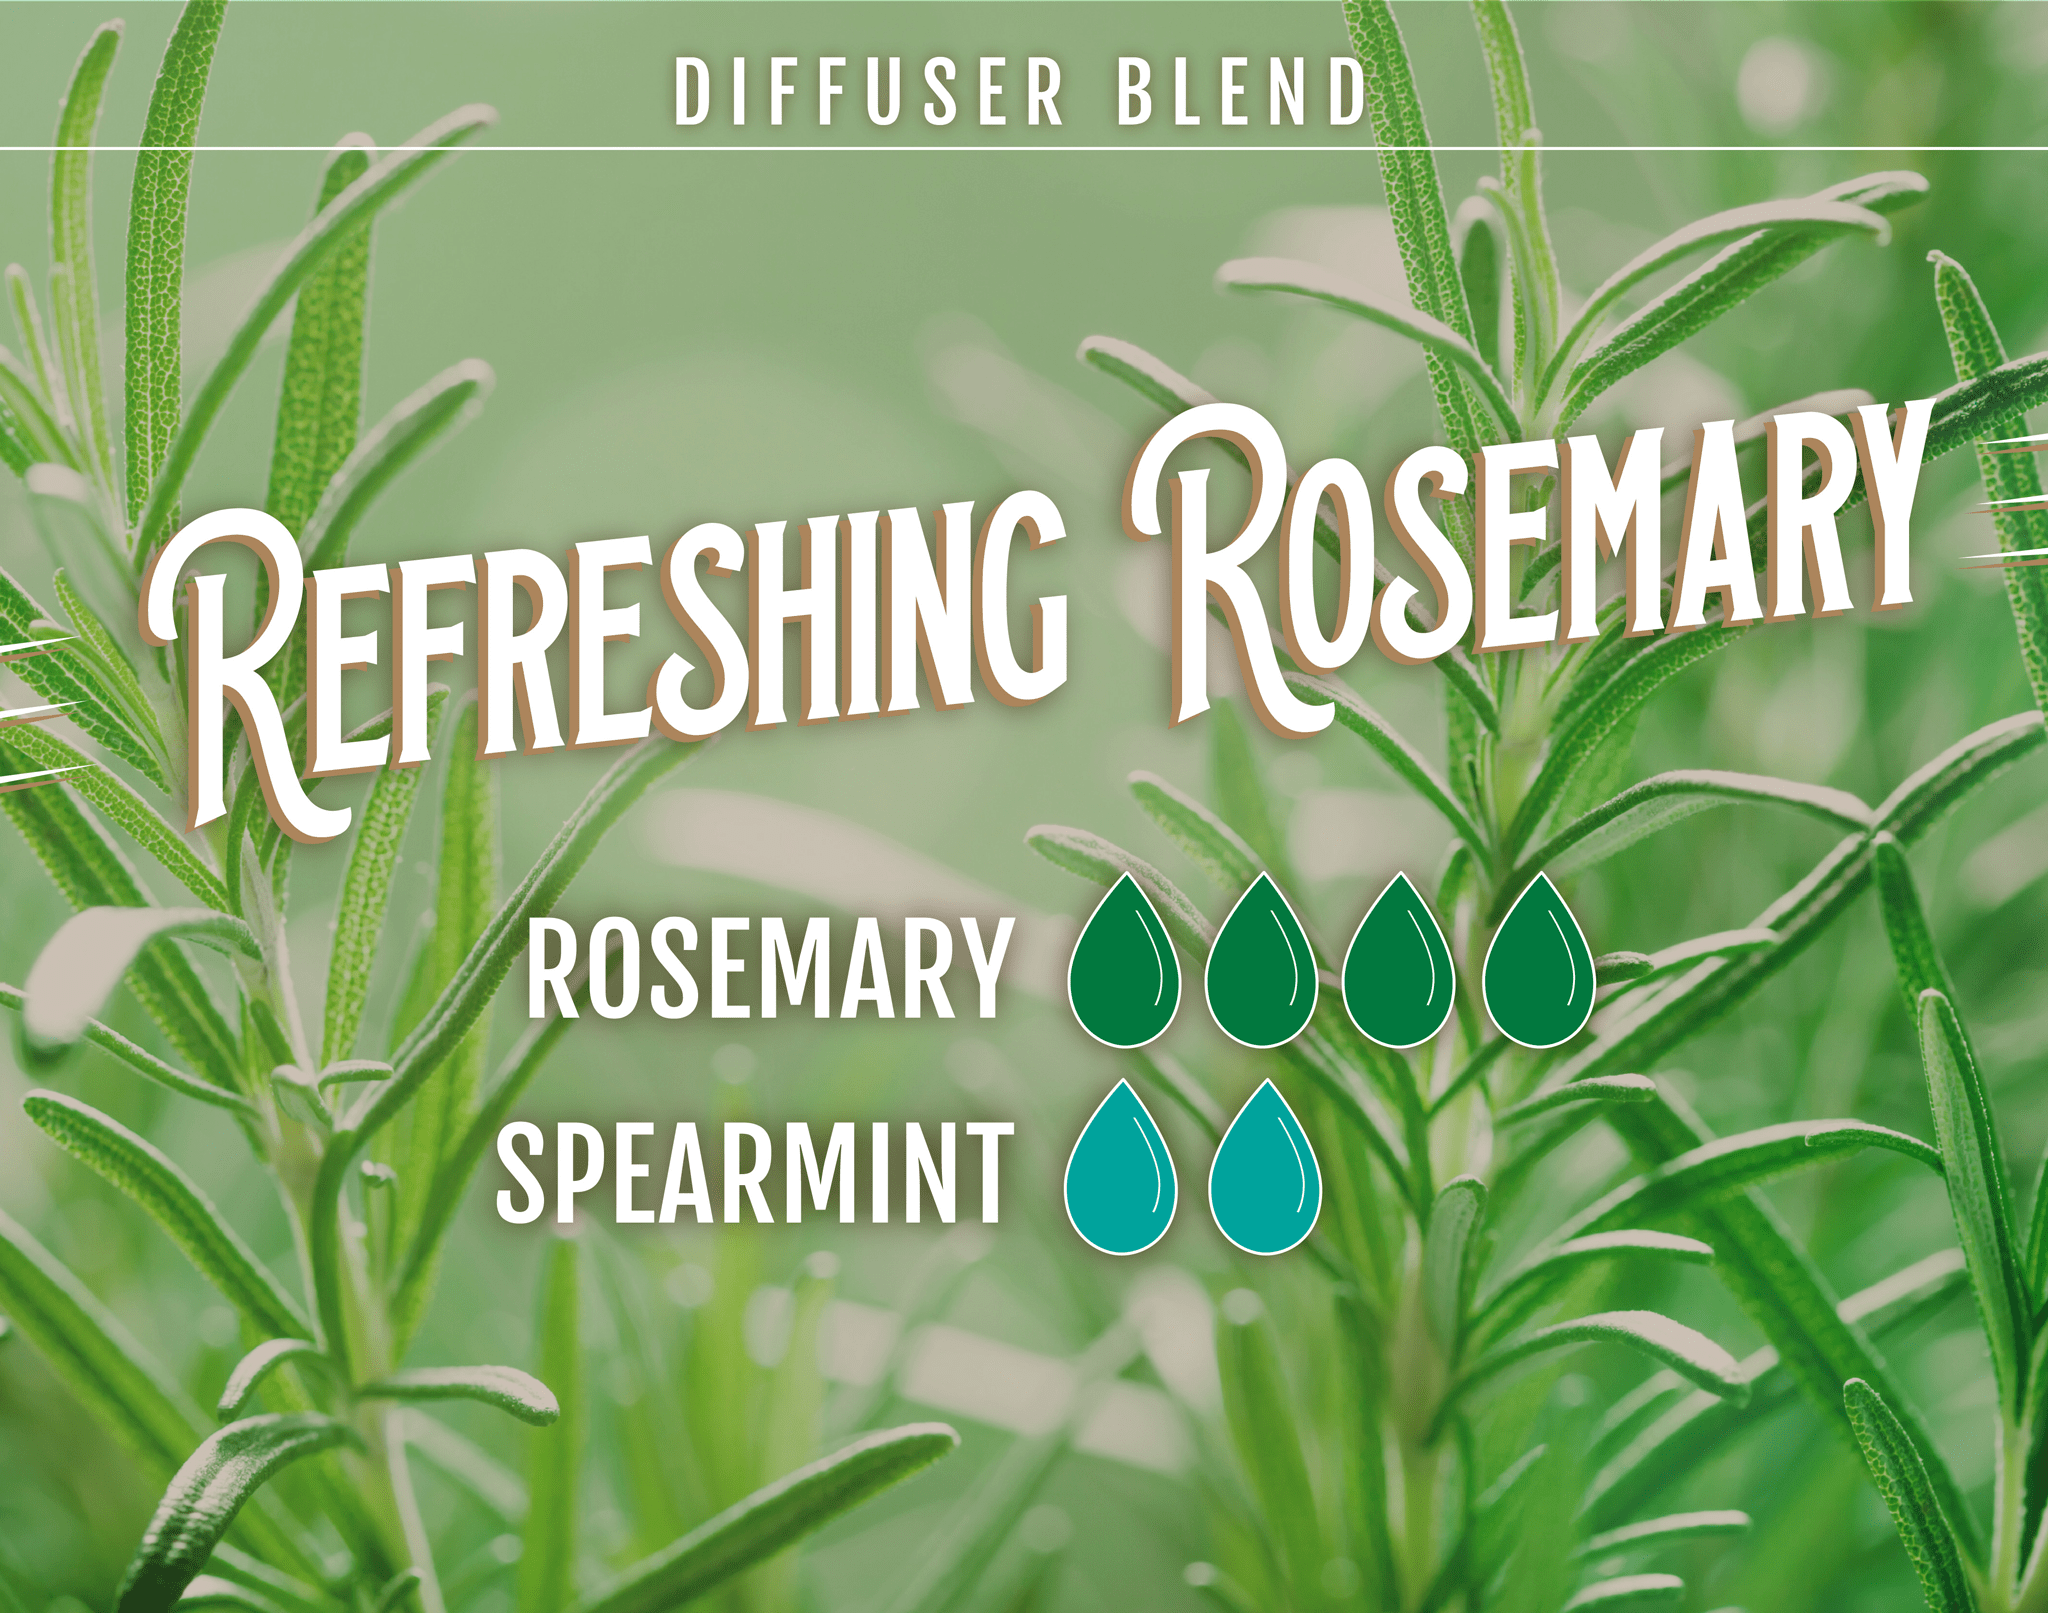 Refreshing Rosemary Diffuser Blend - 4 drops of Rosemary, 2 Drops of Spearmint